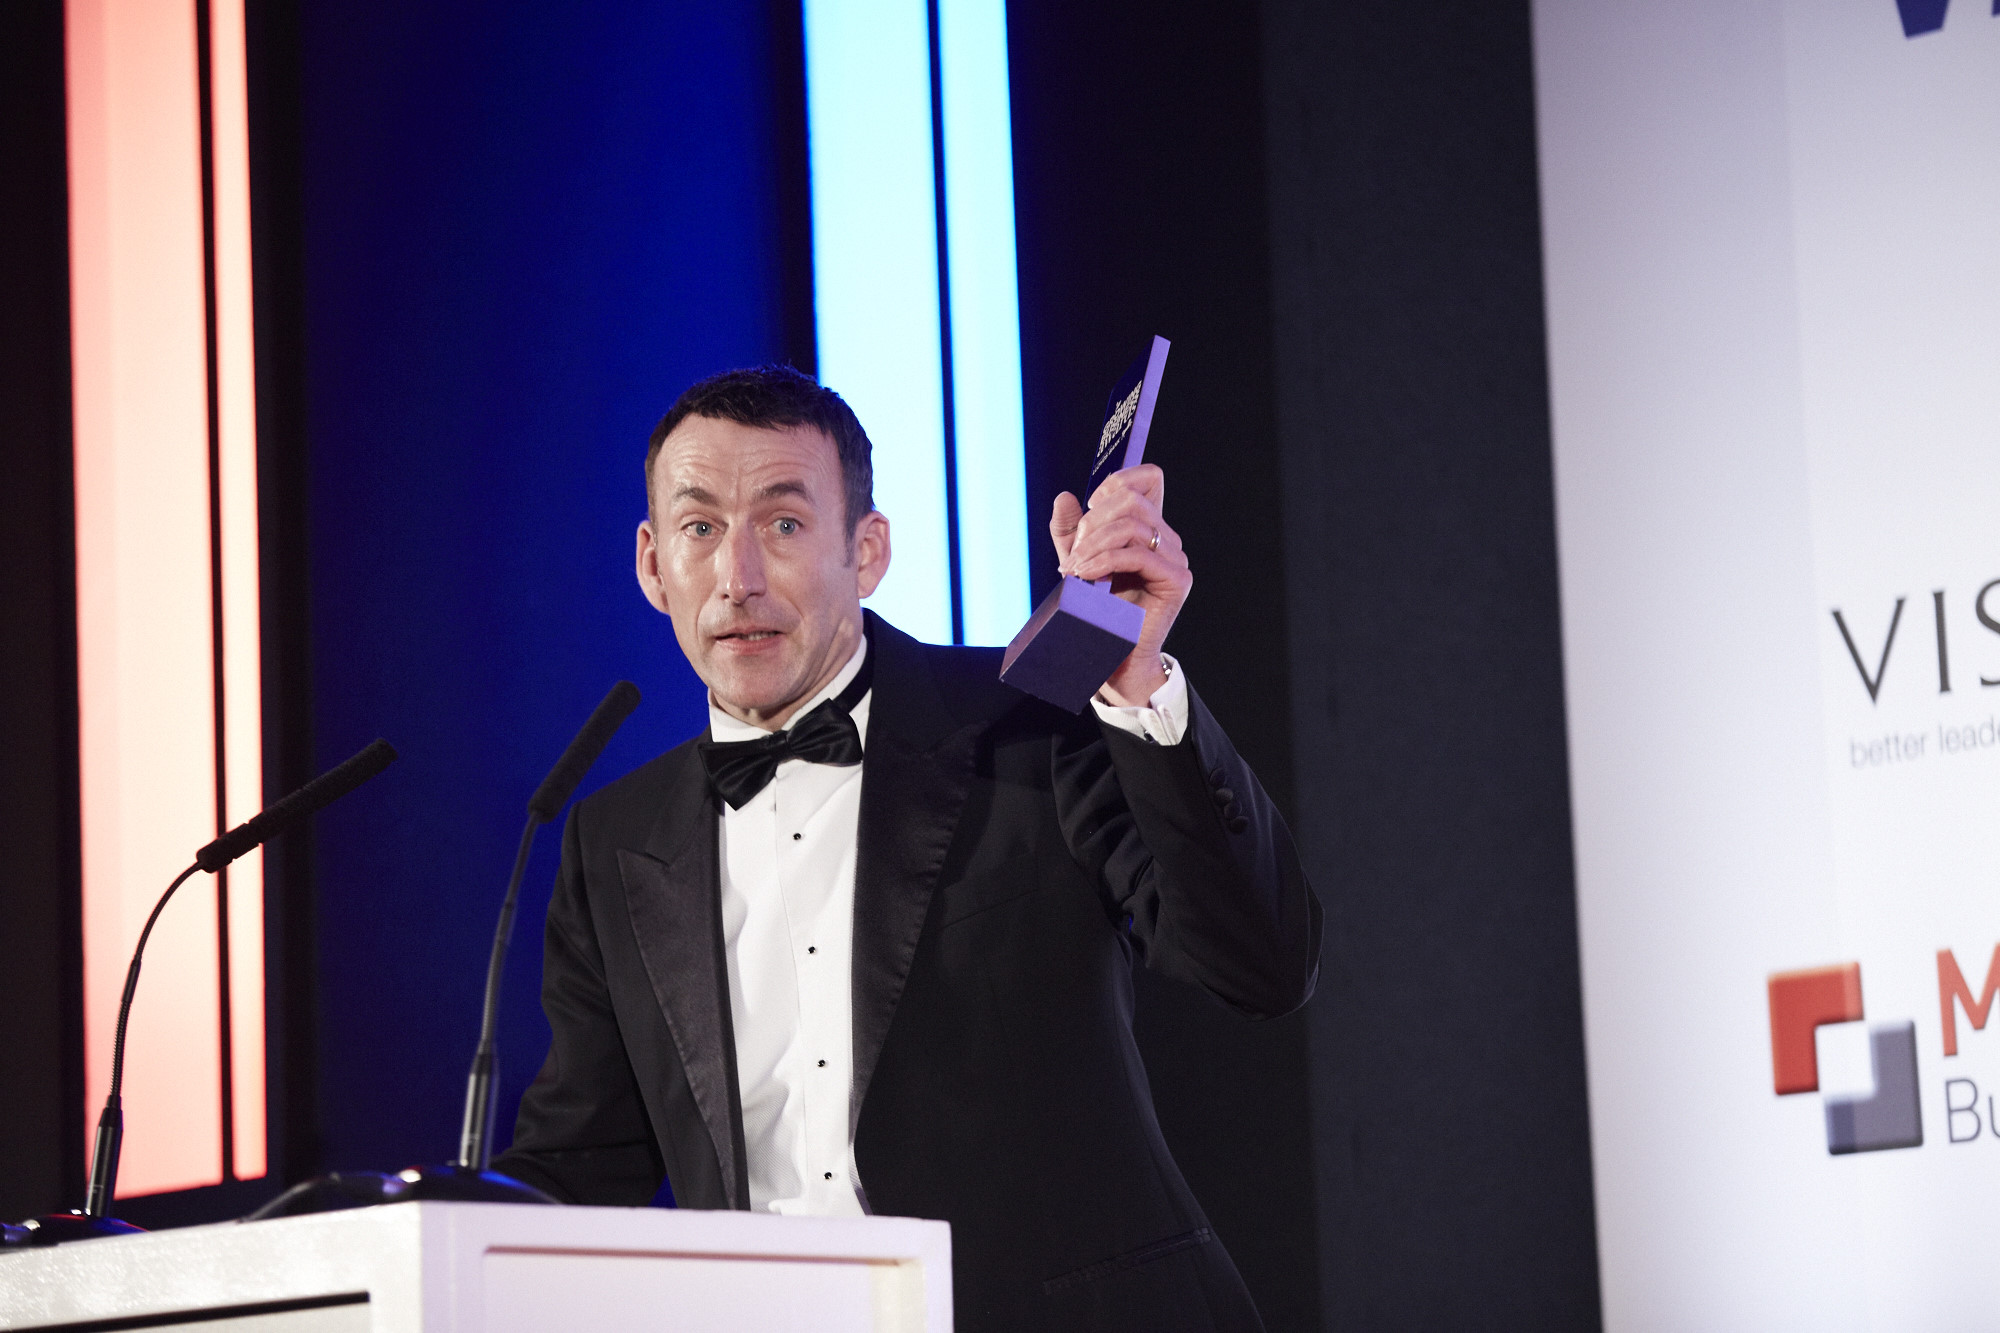 Our Entrepreneur of the Year's top tips for growing a business